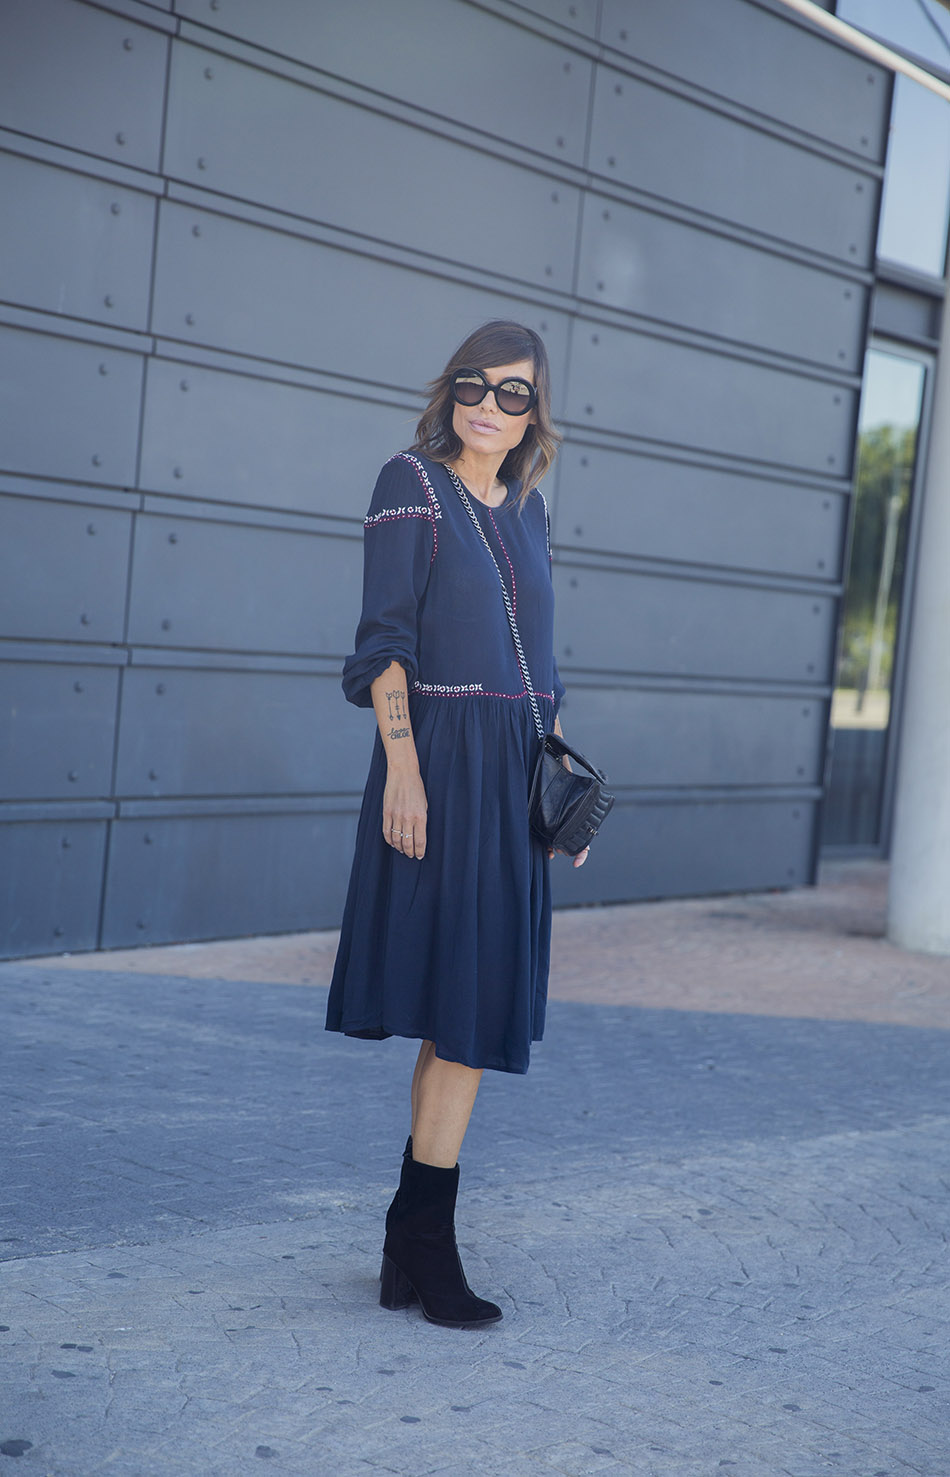 street-style-kiabi-dress-sunglasses-black-boots-05